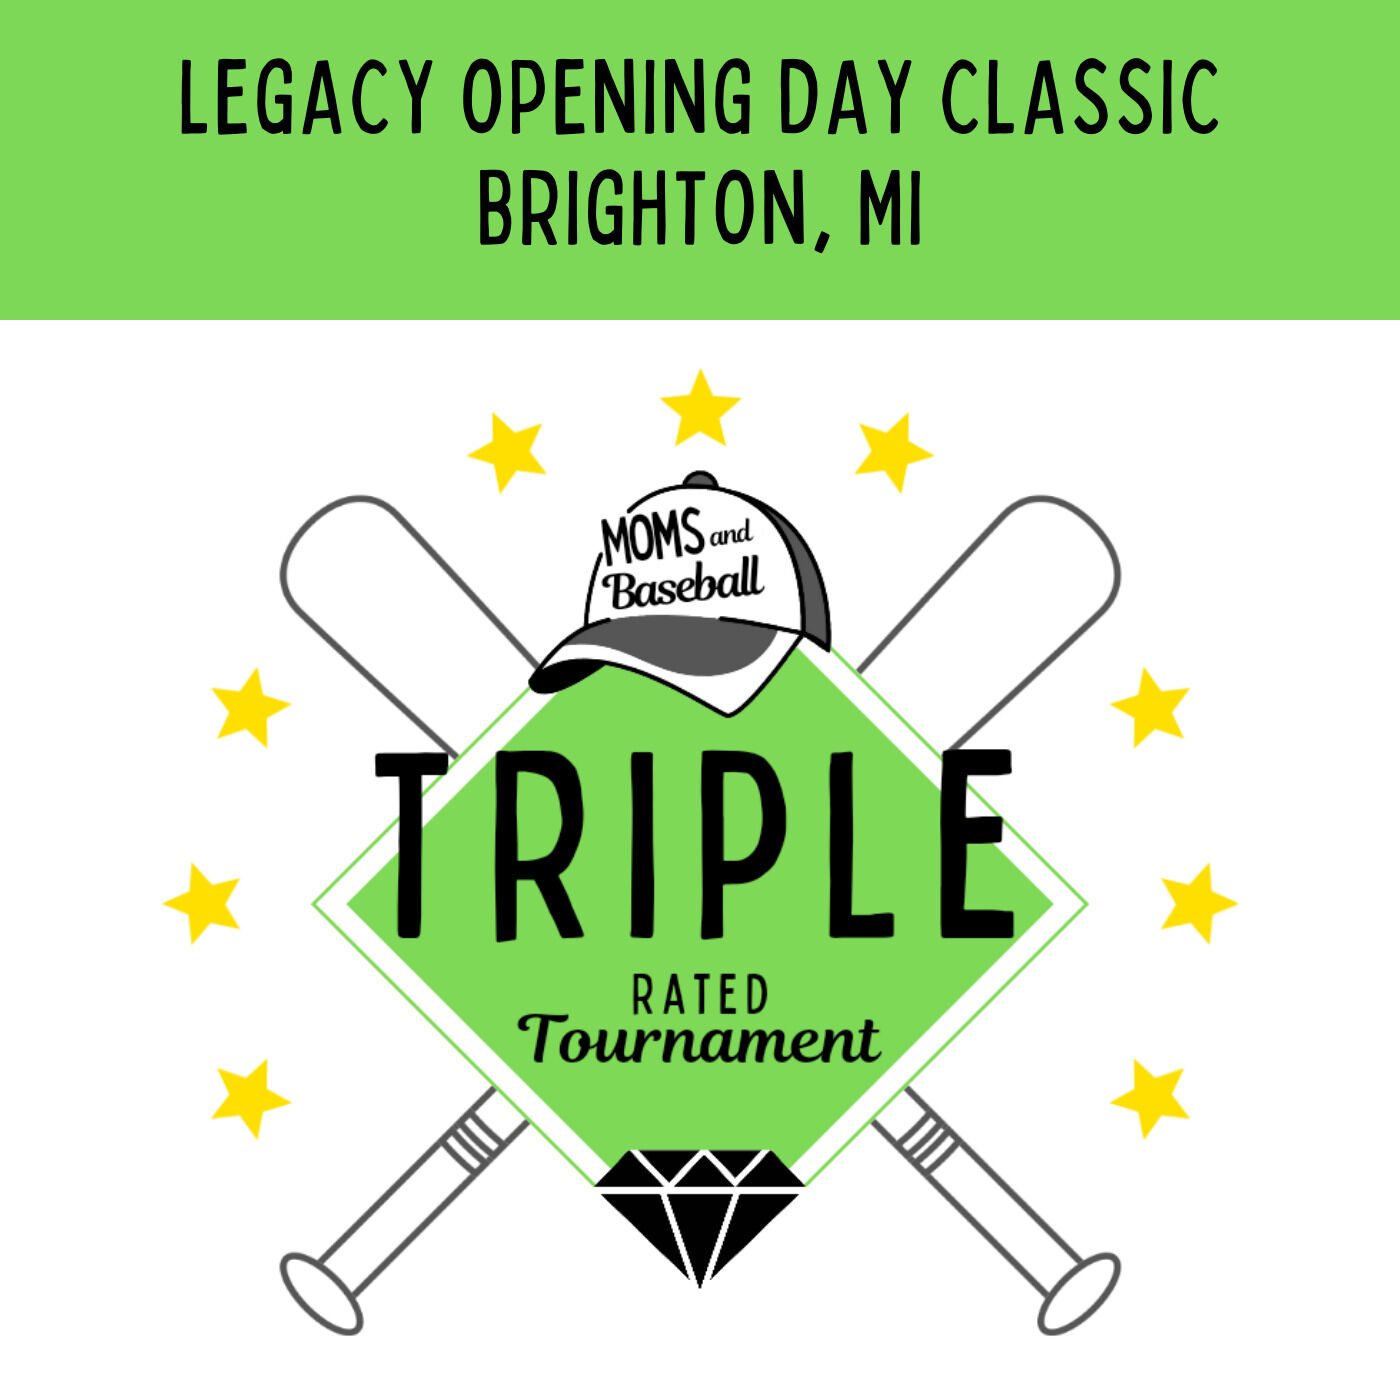 037: Legacy Opening Day Classic Review (Michigan)